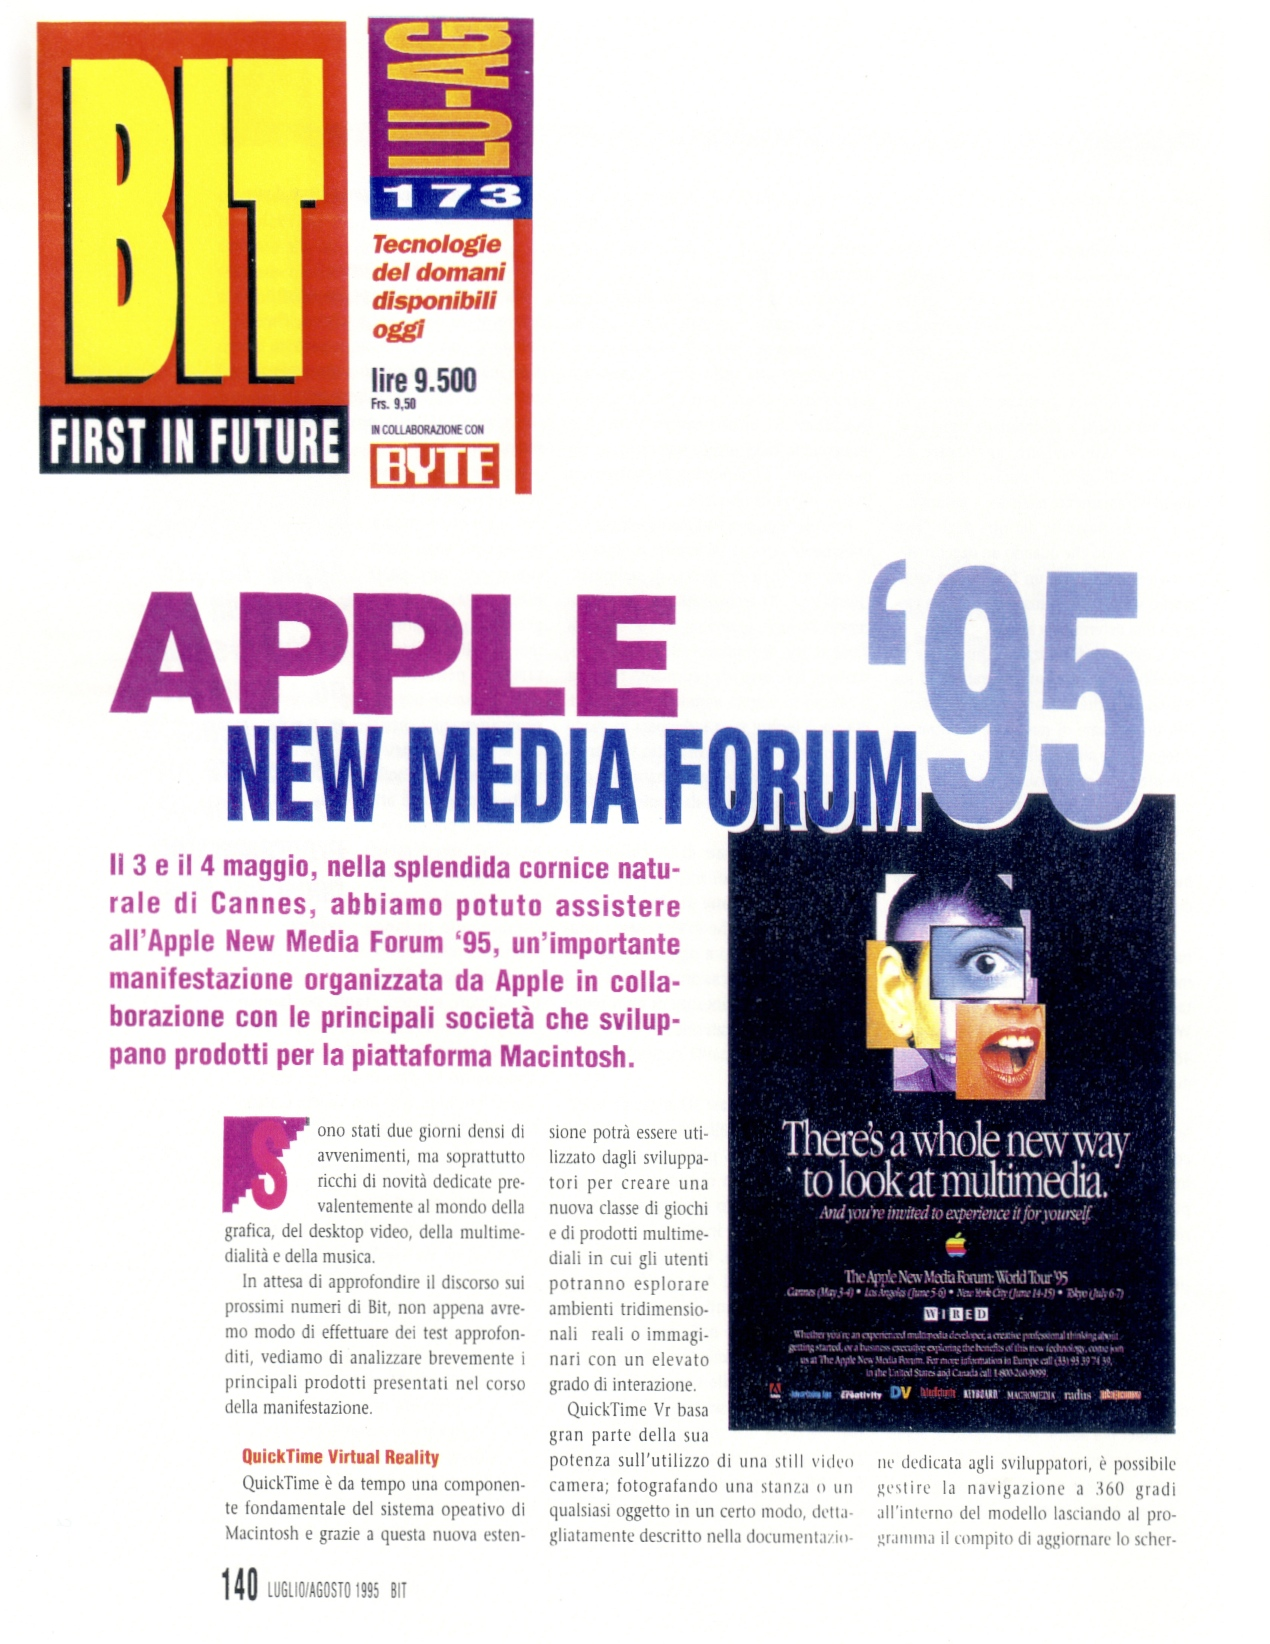 (1995) Bit First in Future P1